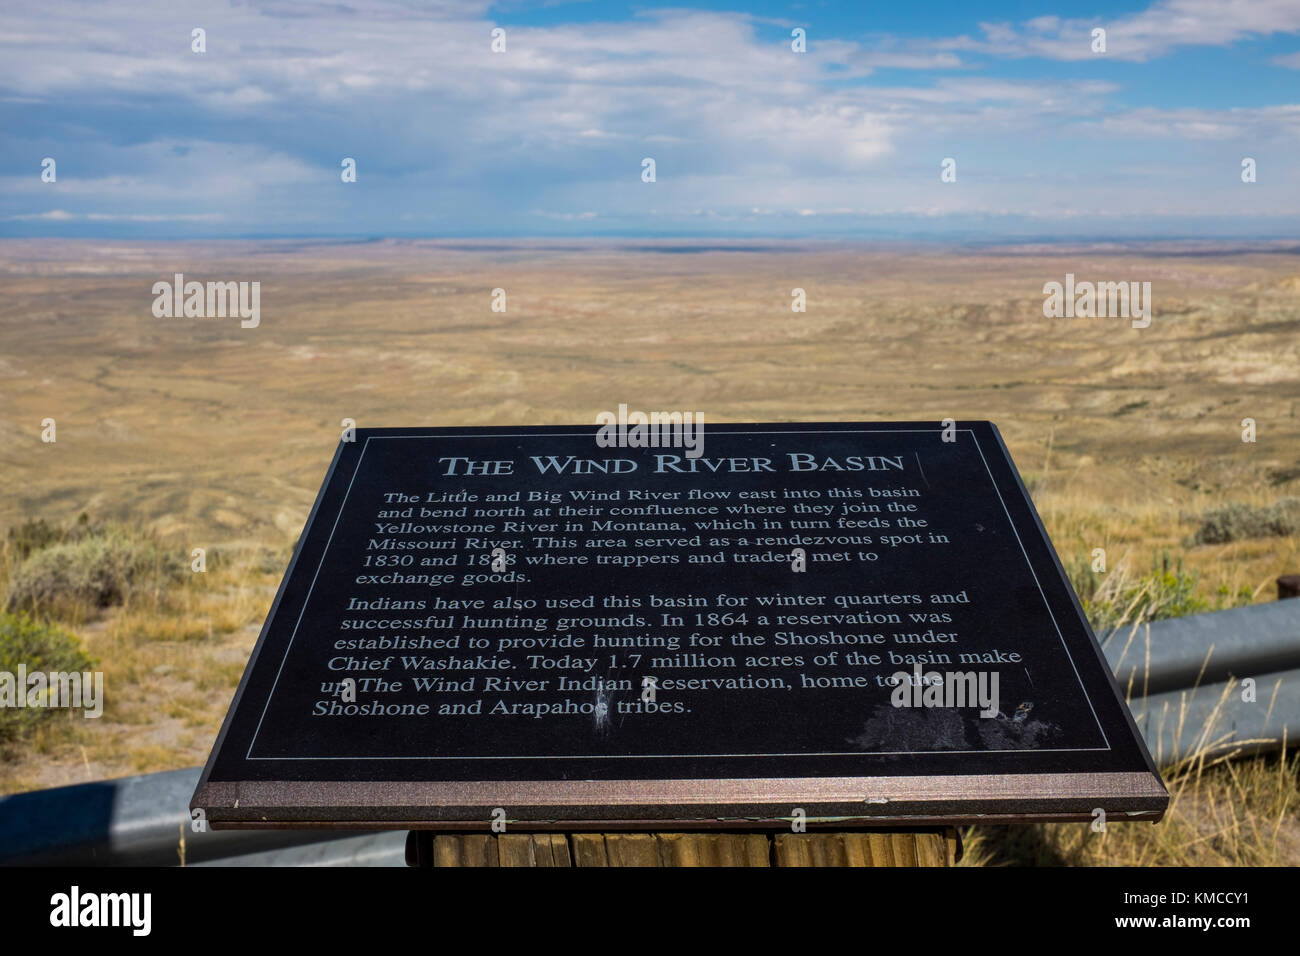 an overlook of the arapaho basin - Stock Image